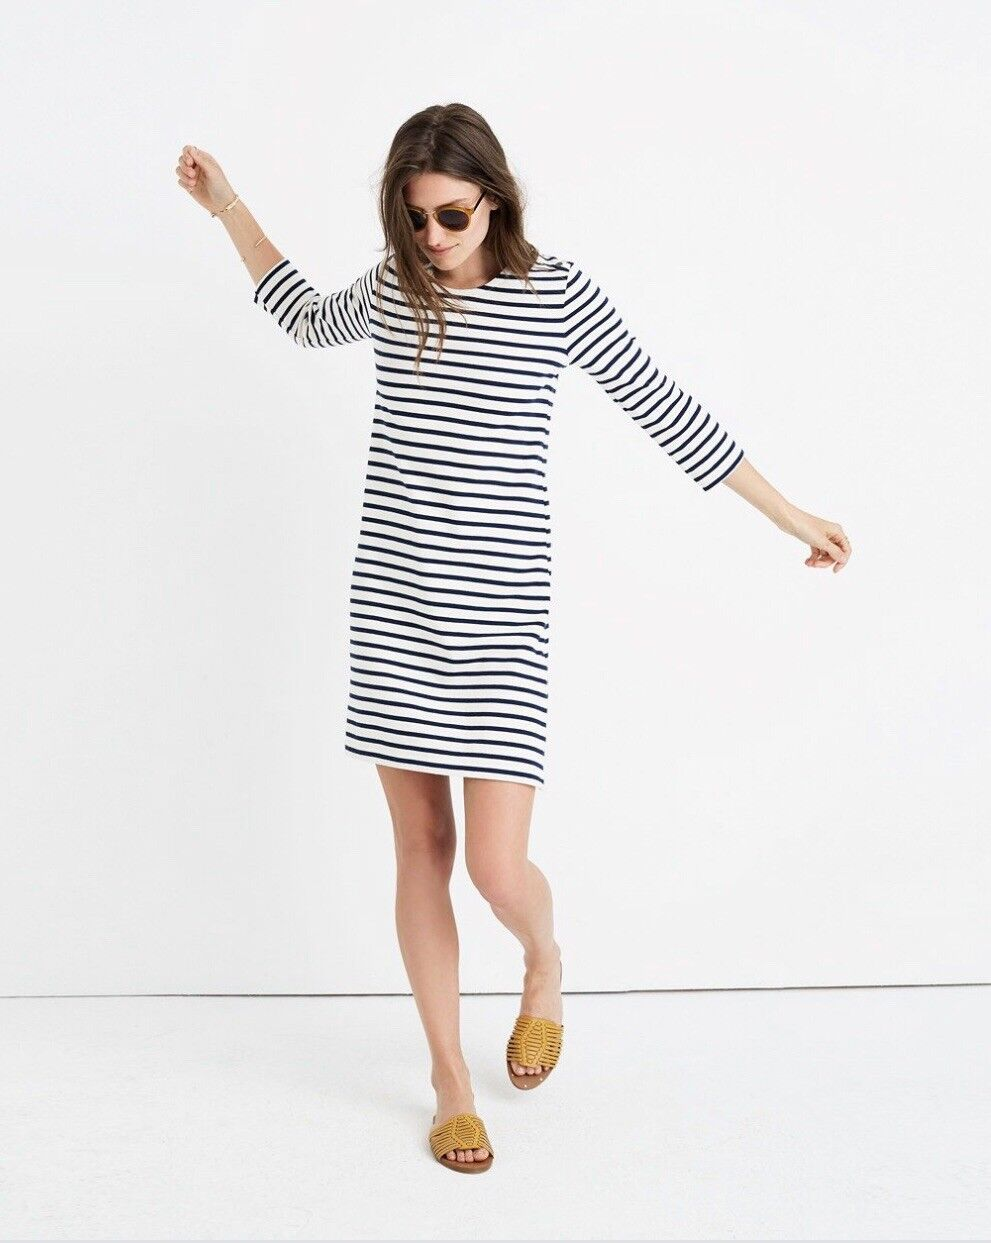 Madewell striped knit dress , LARGE, indigo, NWT, sold out